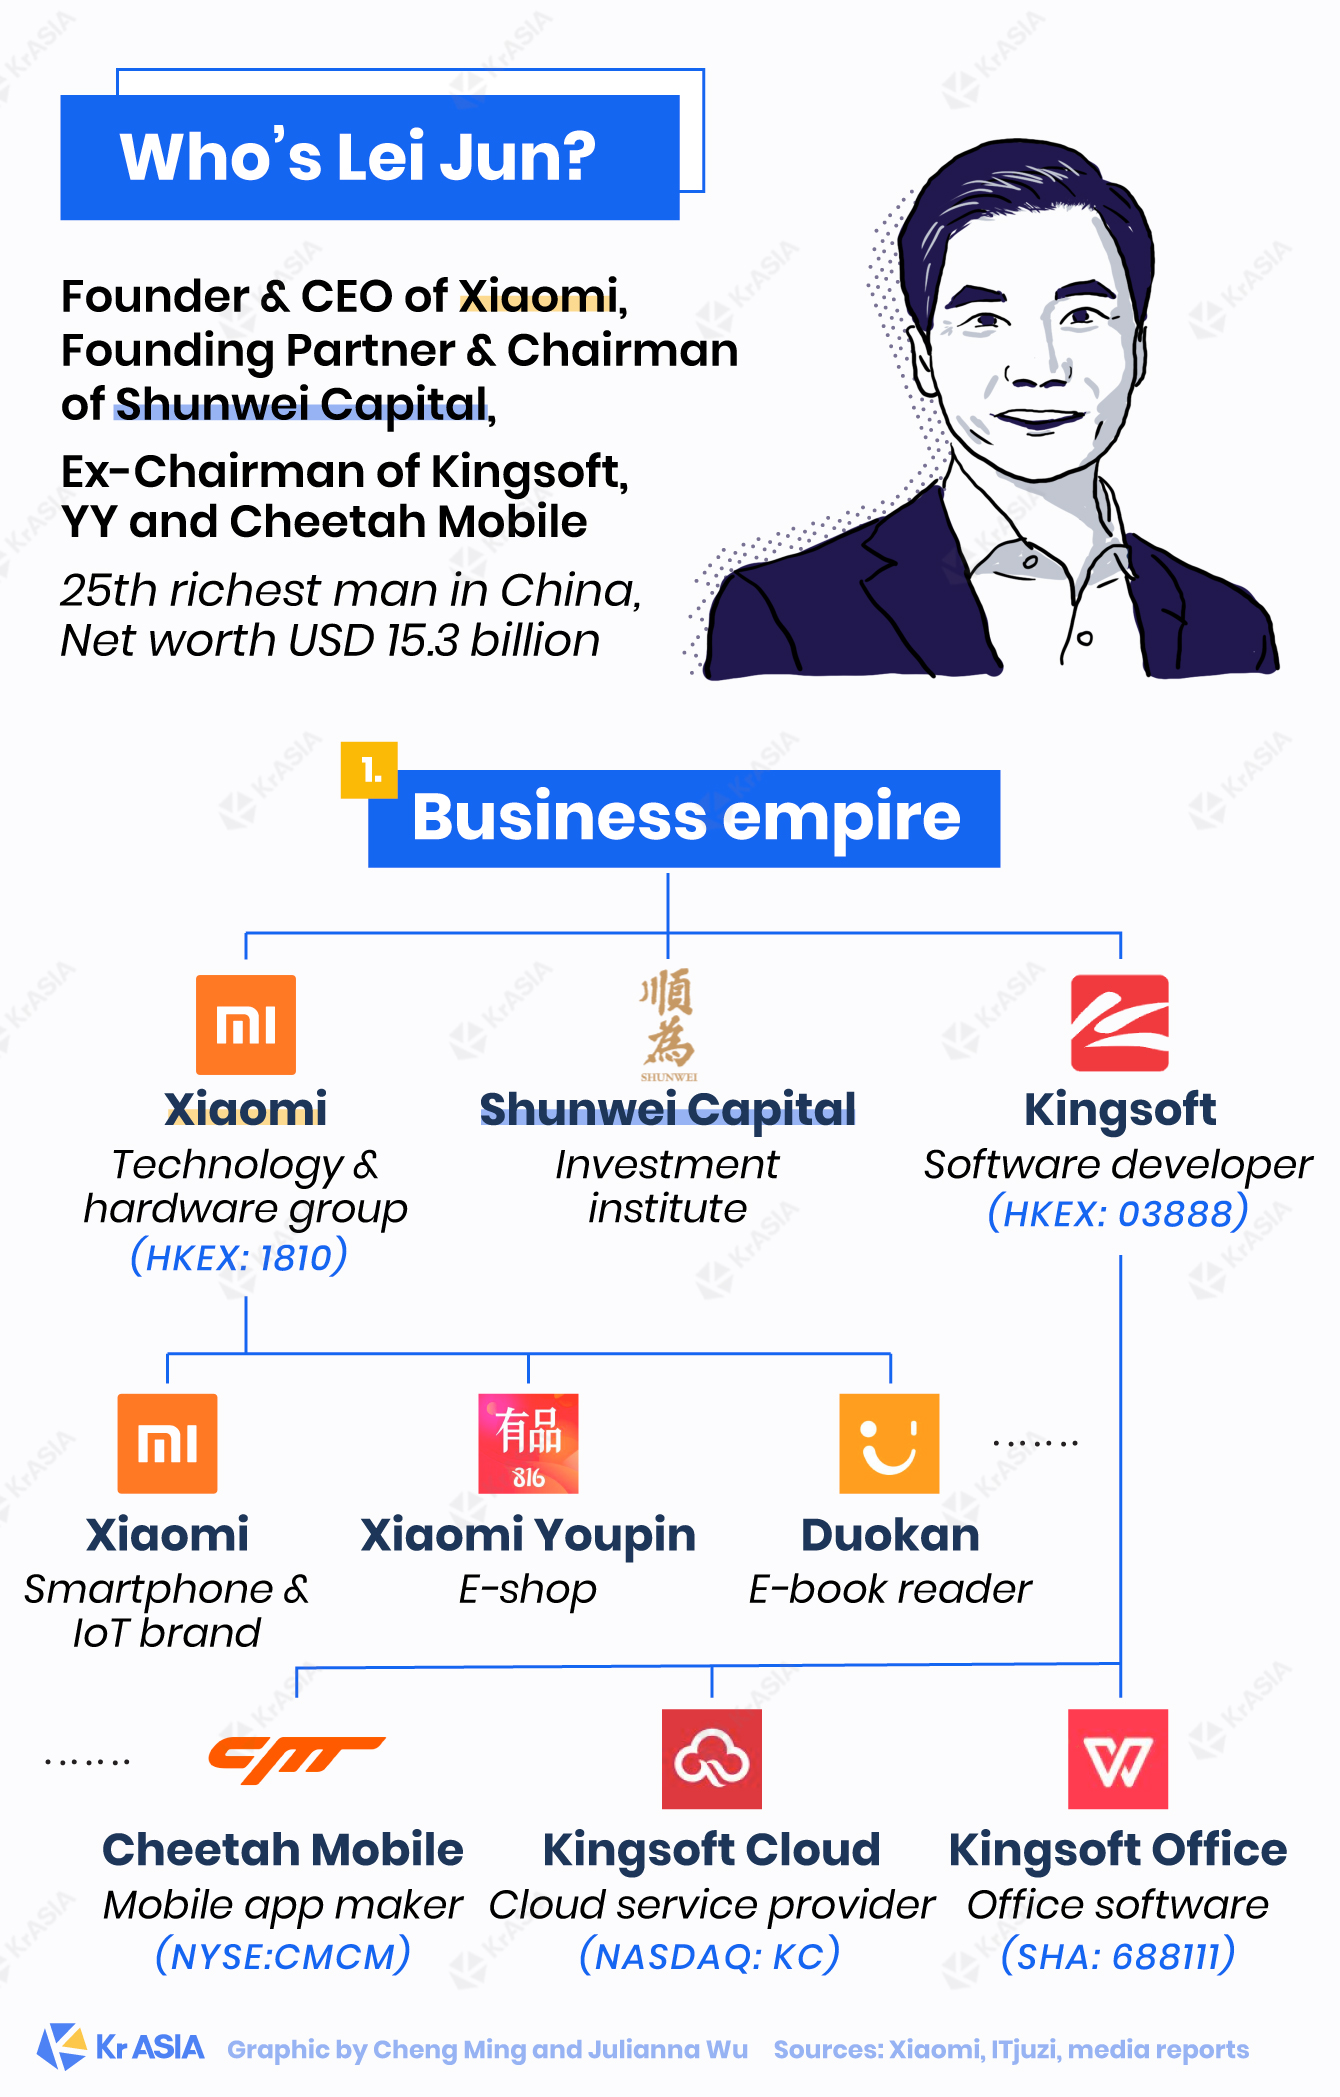 Xiaomi CEO Lei Jun's business empire